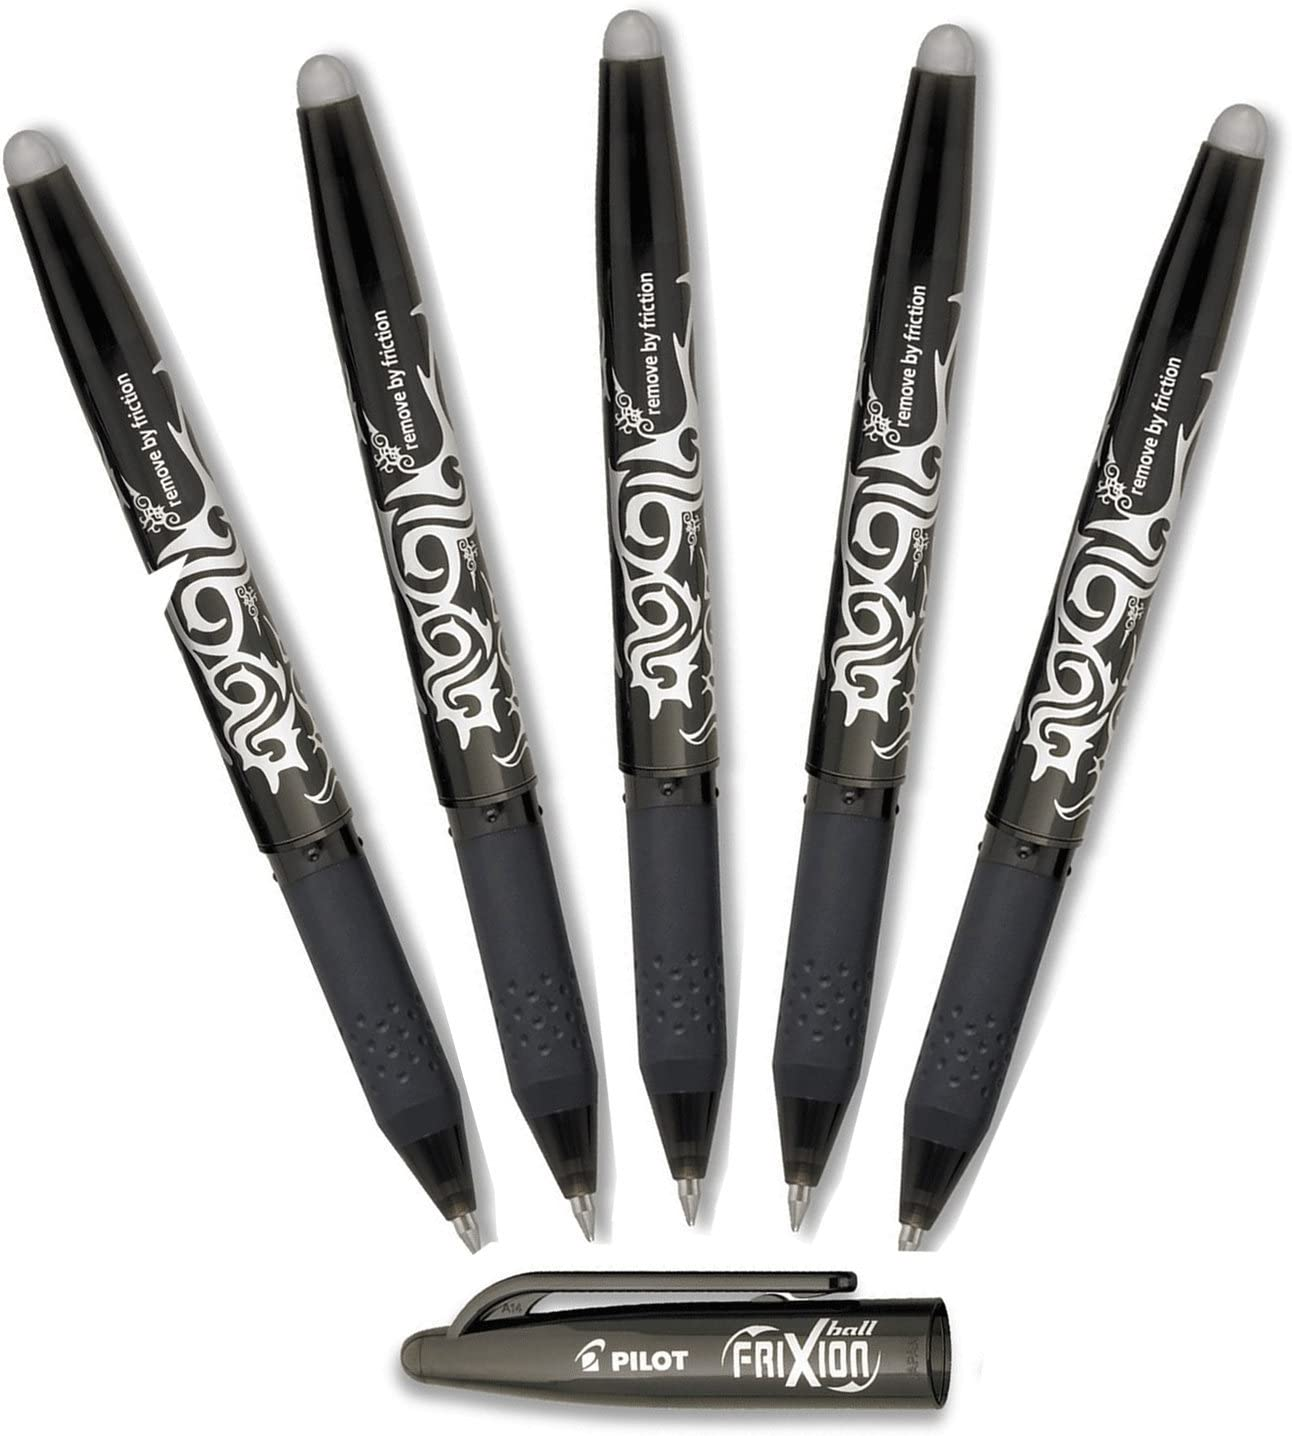 Very online shopping popular Pilot FriXion Ball Erasable Gel Ink 0.7mm Pens Fine Blac Point